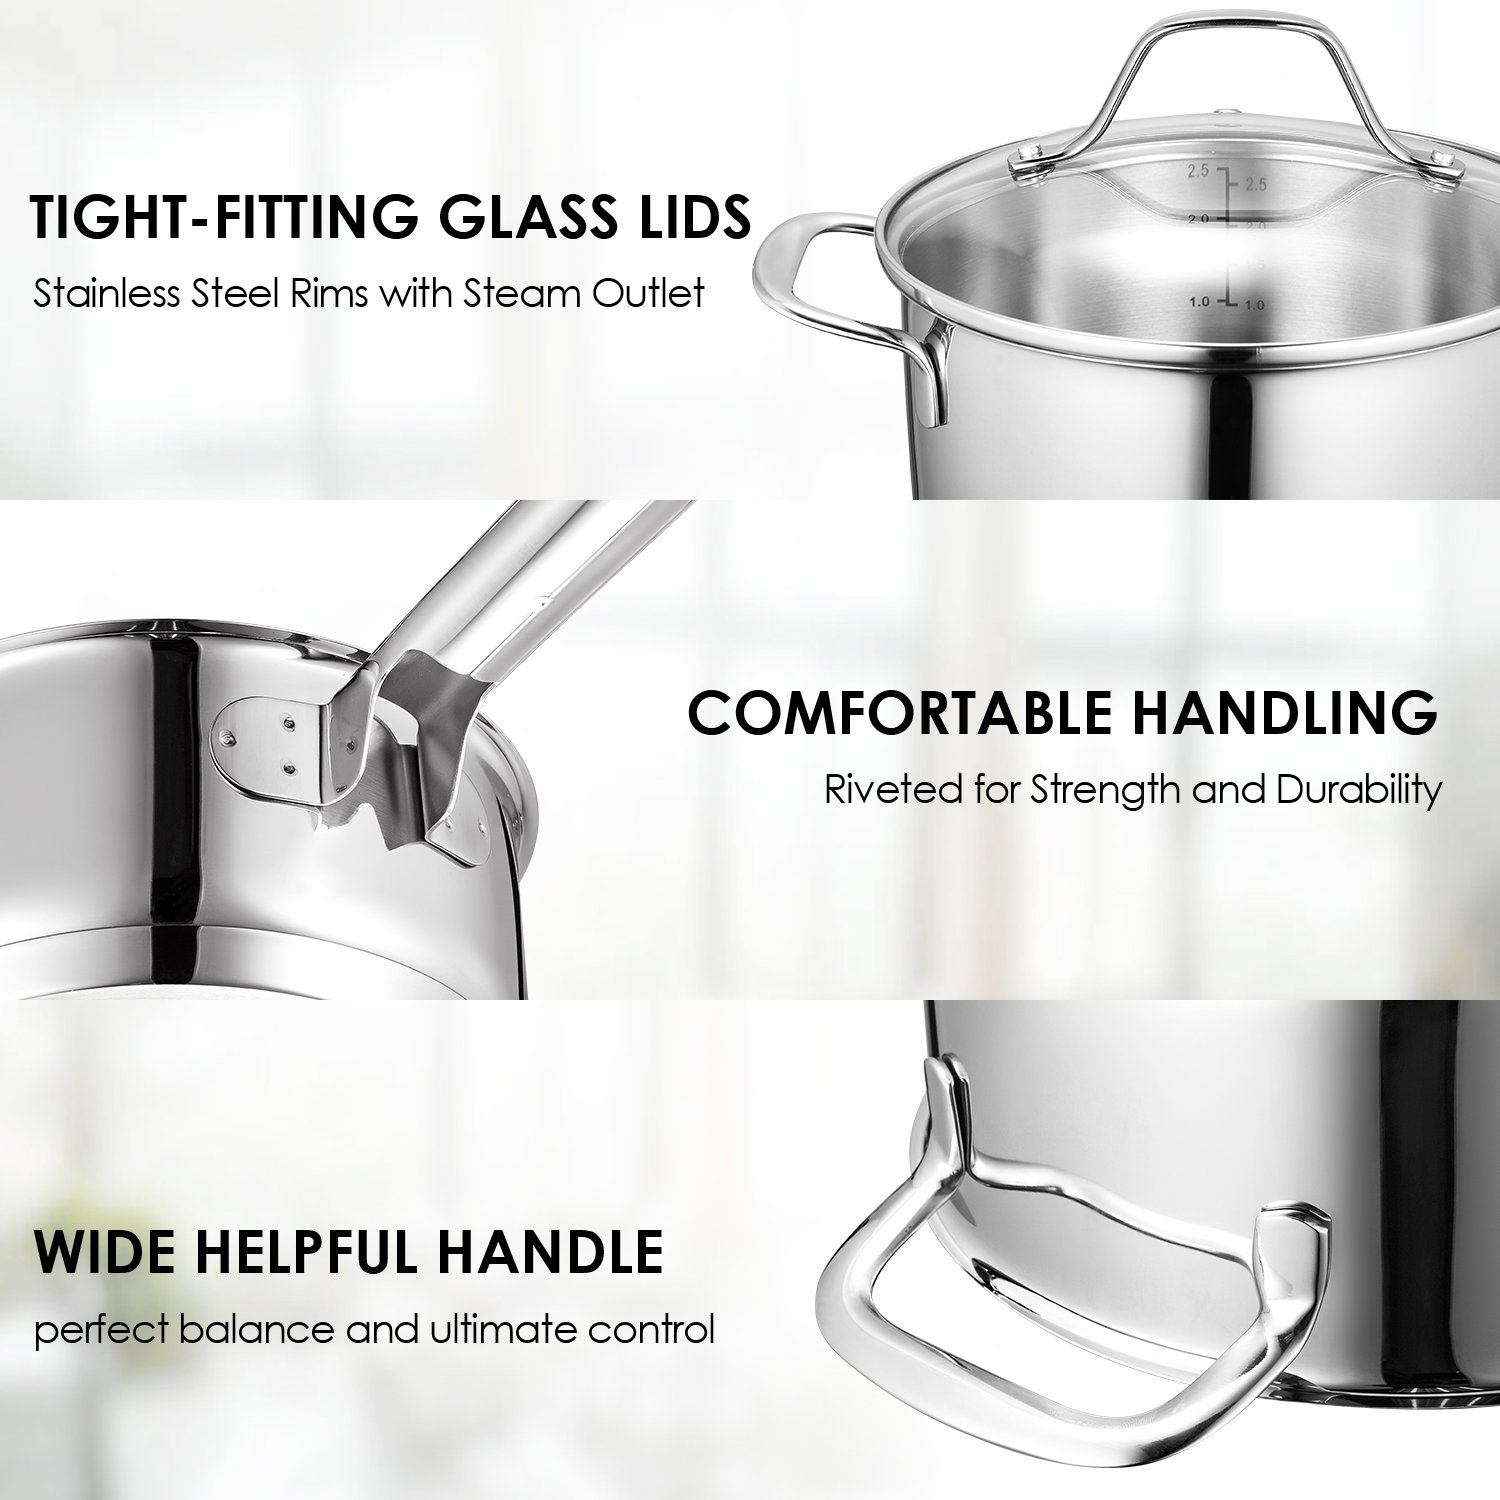 Deik Cookware Set, Kitchenware Set, MultiClad Pro Stainless Steel 12-Piece Pots and Pans Set, Rustproof & Oven-Safe Cooking Pots, PFOA Free & Riveted Handles with a Bonus of Oven Mitts by Deik (Image #2)